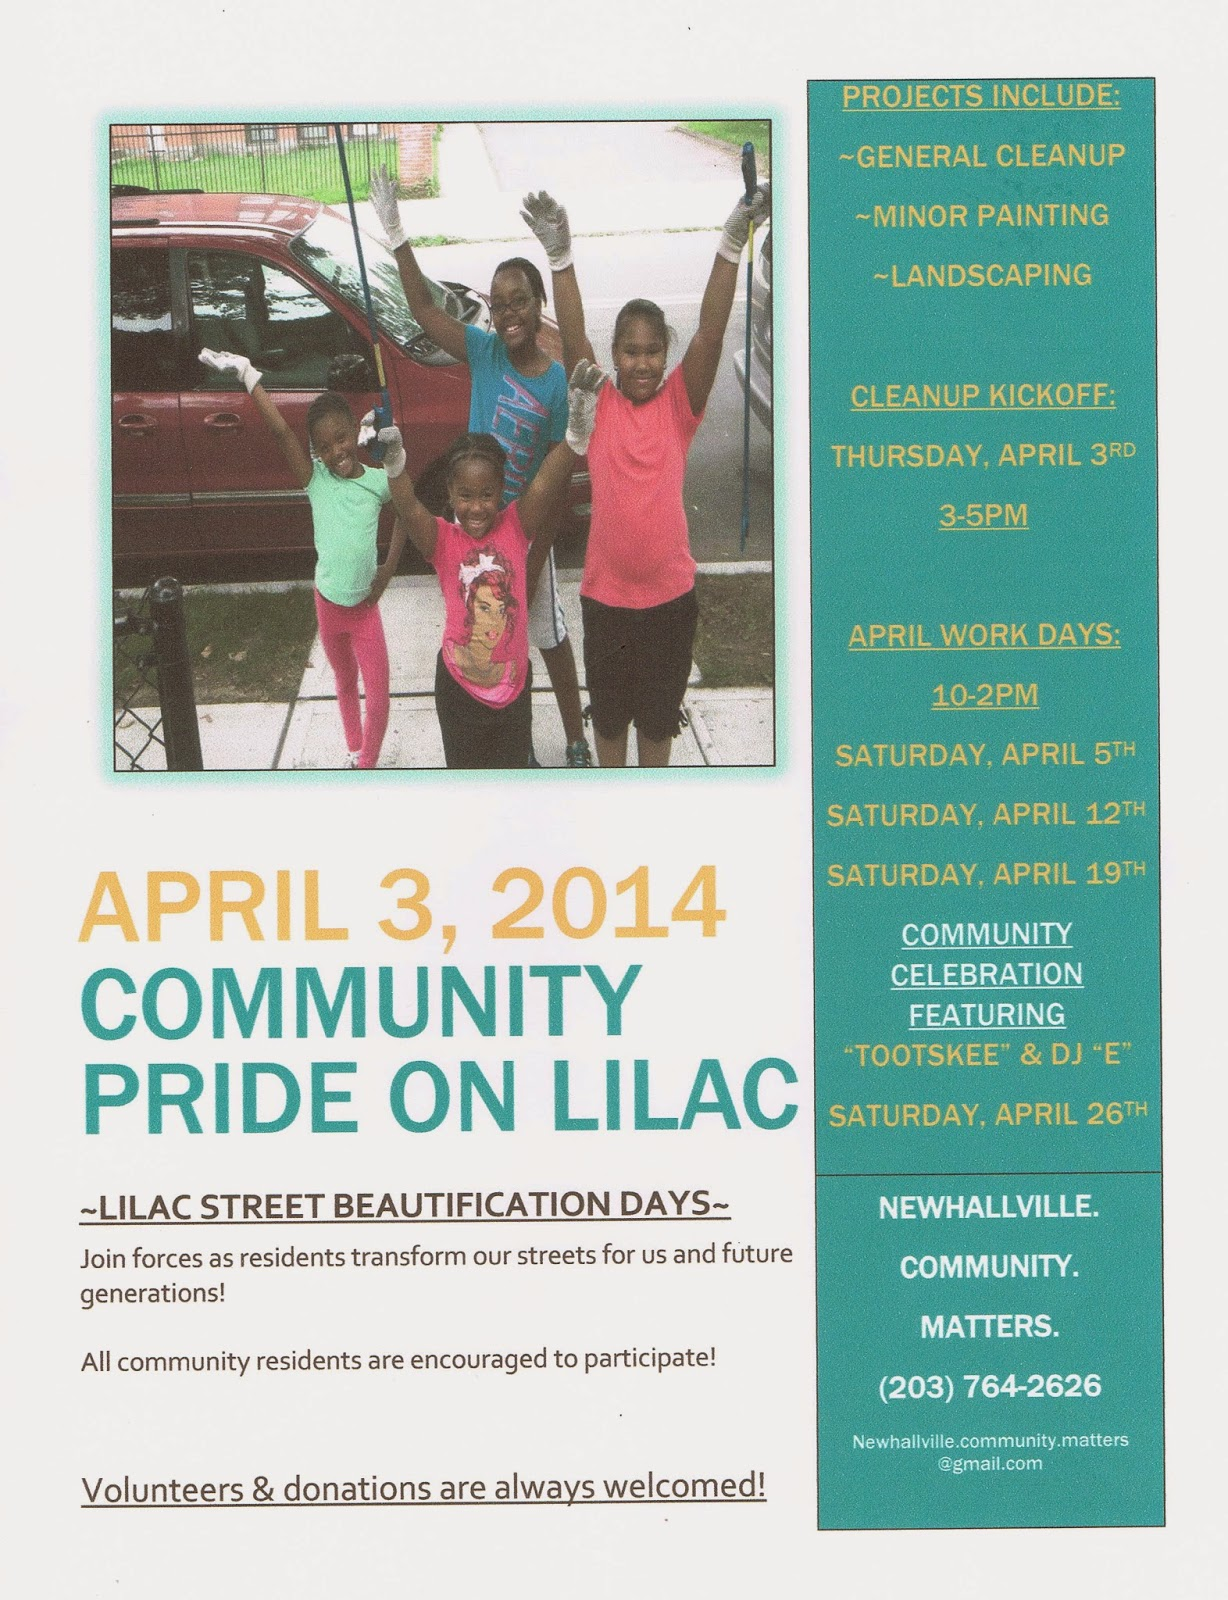 The FICKLIN MEDIA GROUP,LLC: April 3, 2014, Community Pride on Lilac